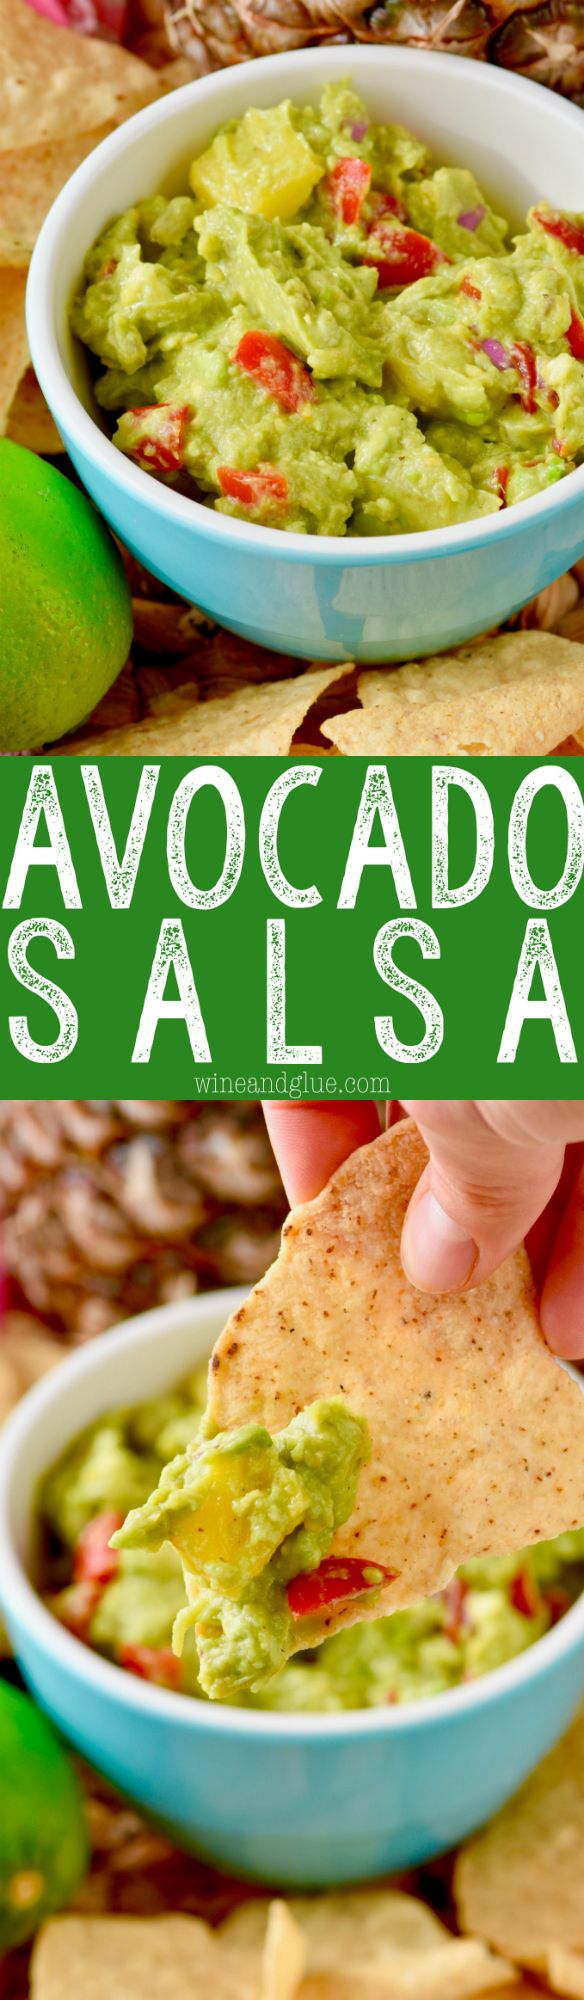 This Avocado Salsa is so easy to make but full of flavor!  Perfect to top your tacos or just gobble up with chips!